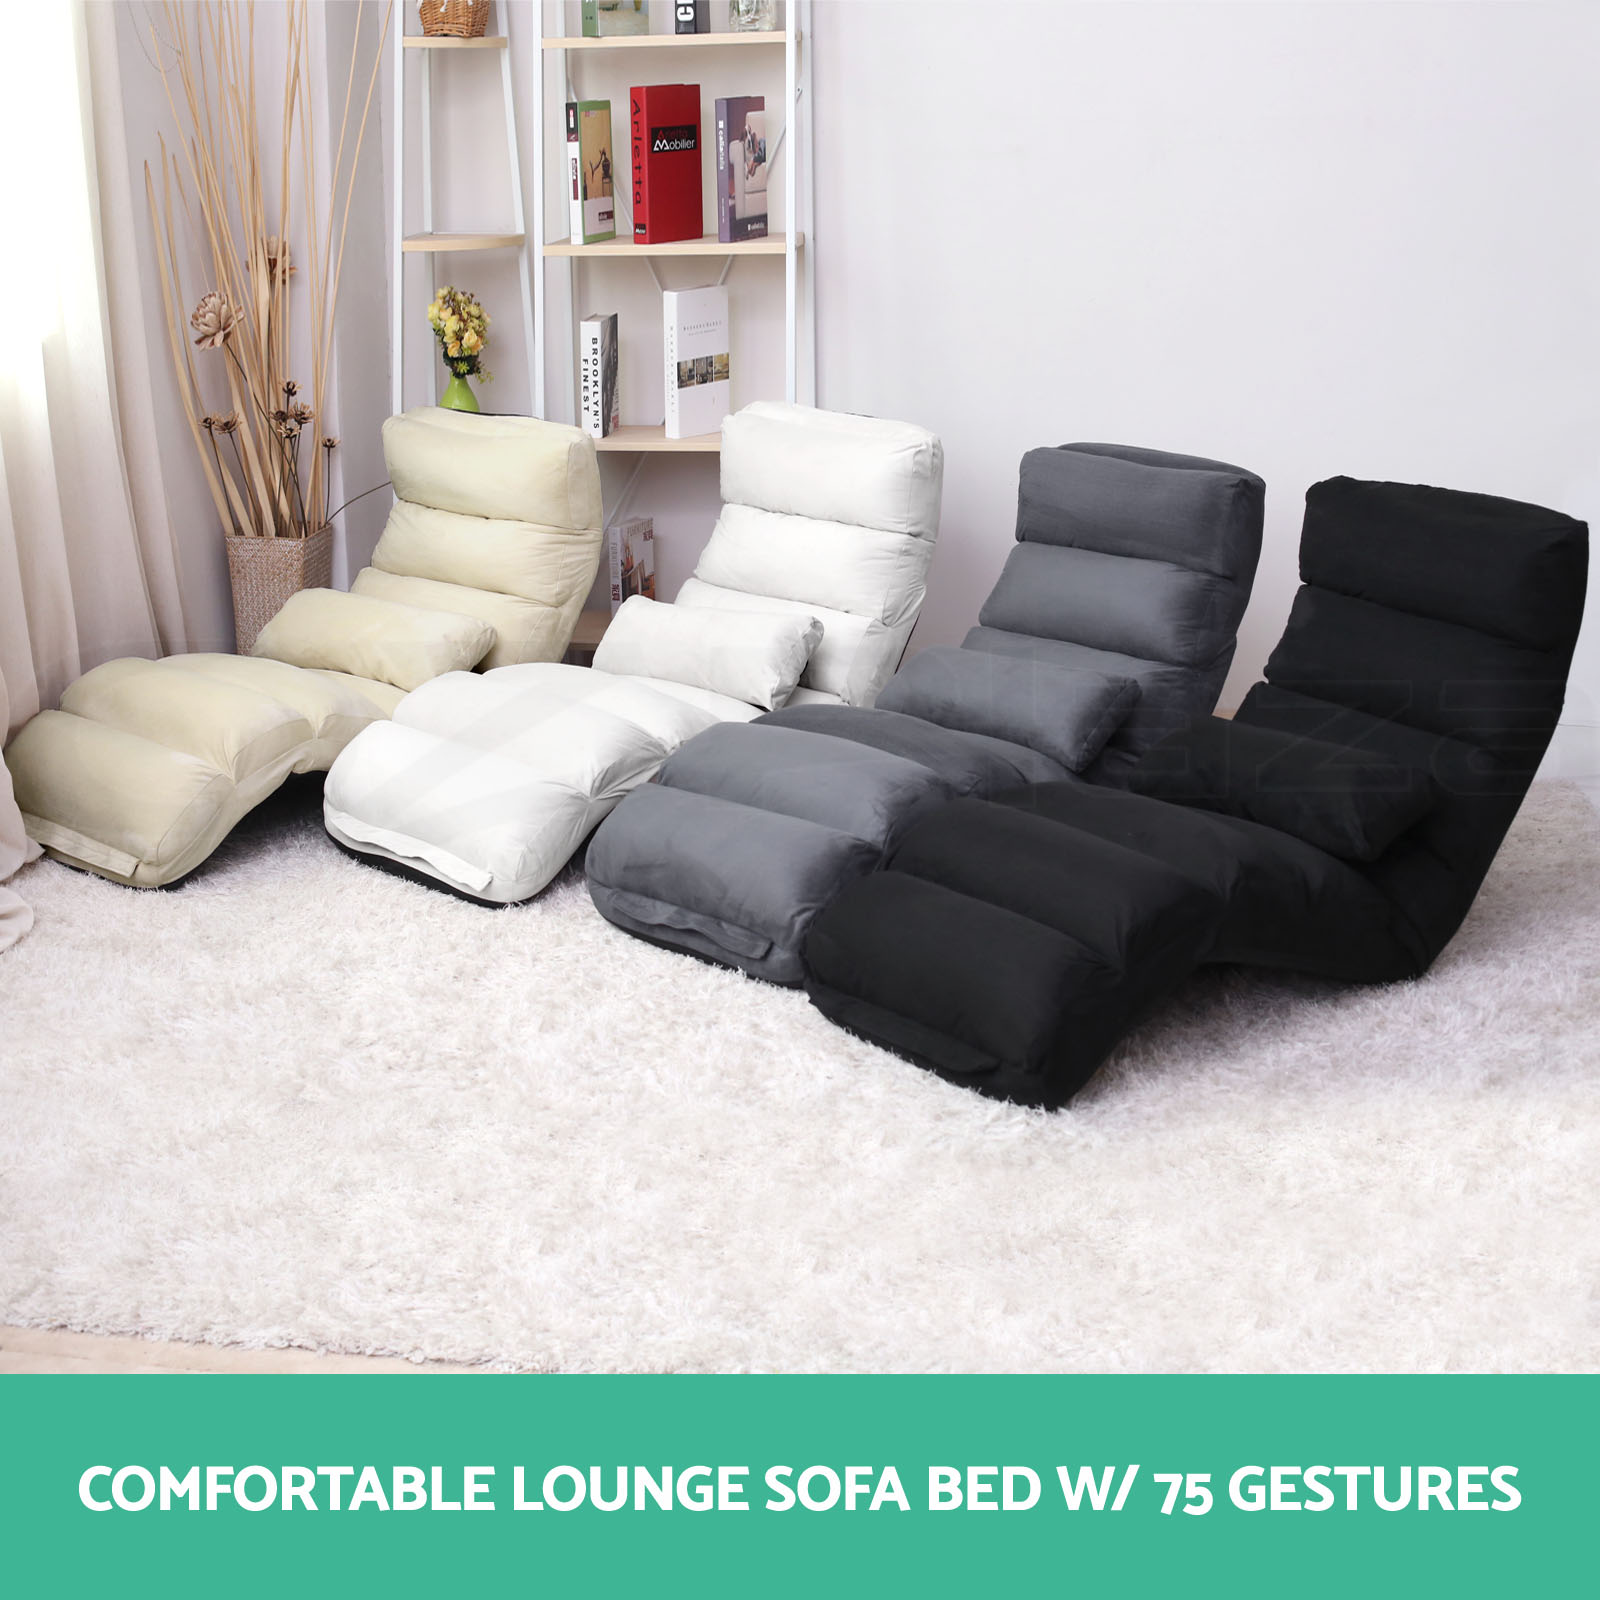 Lounge sofa bed floor recliner folding chaise chair for Couch lounge